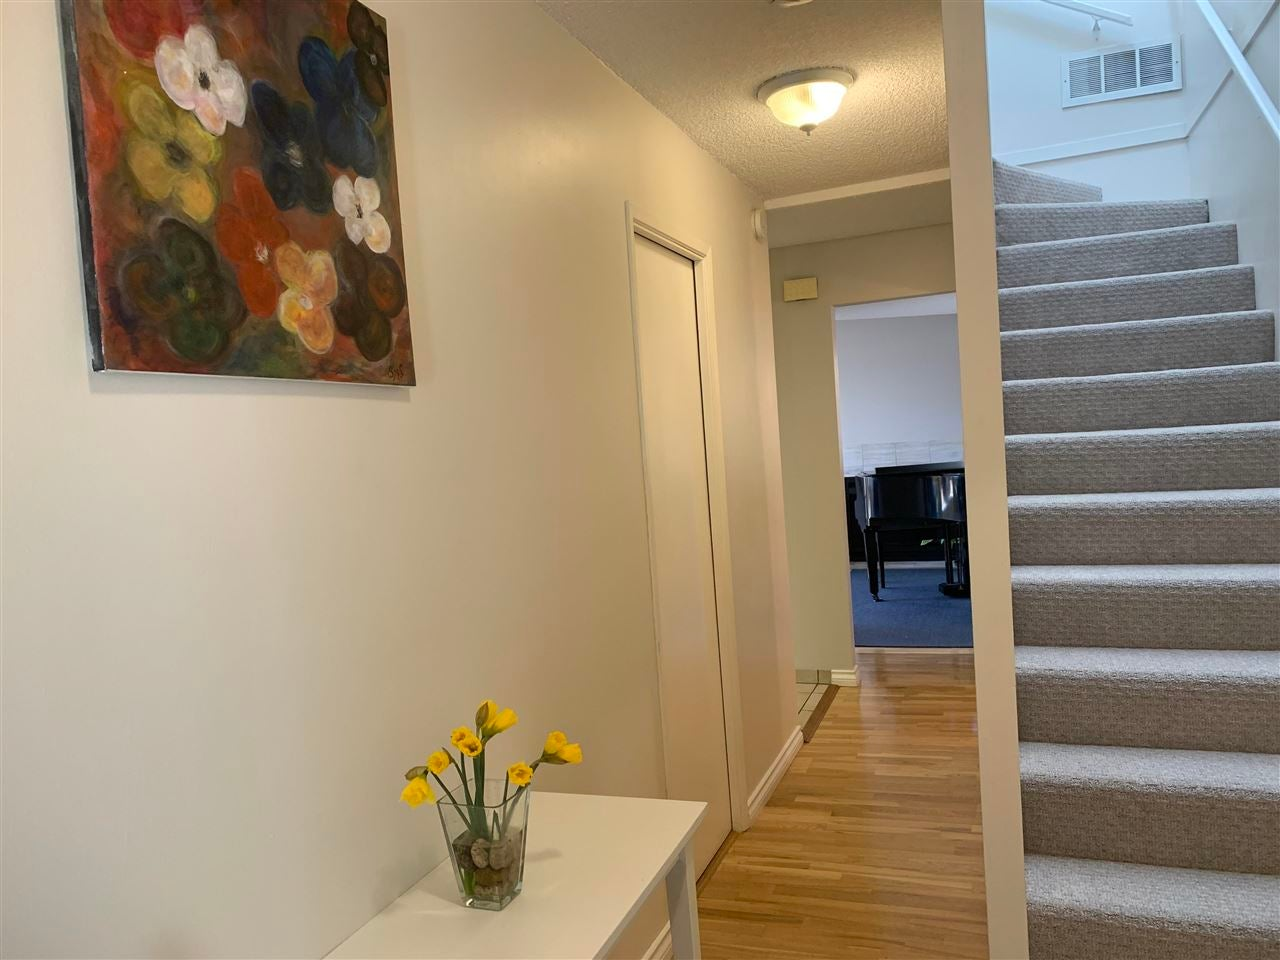 2 230 W 15TH STREET - Central Lonsdale Townhouse for sale, 3 Bedrooms (R2572749) - #13